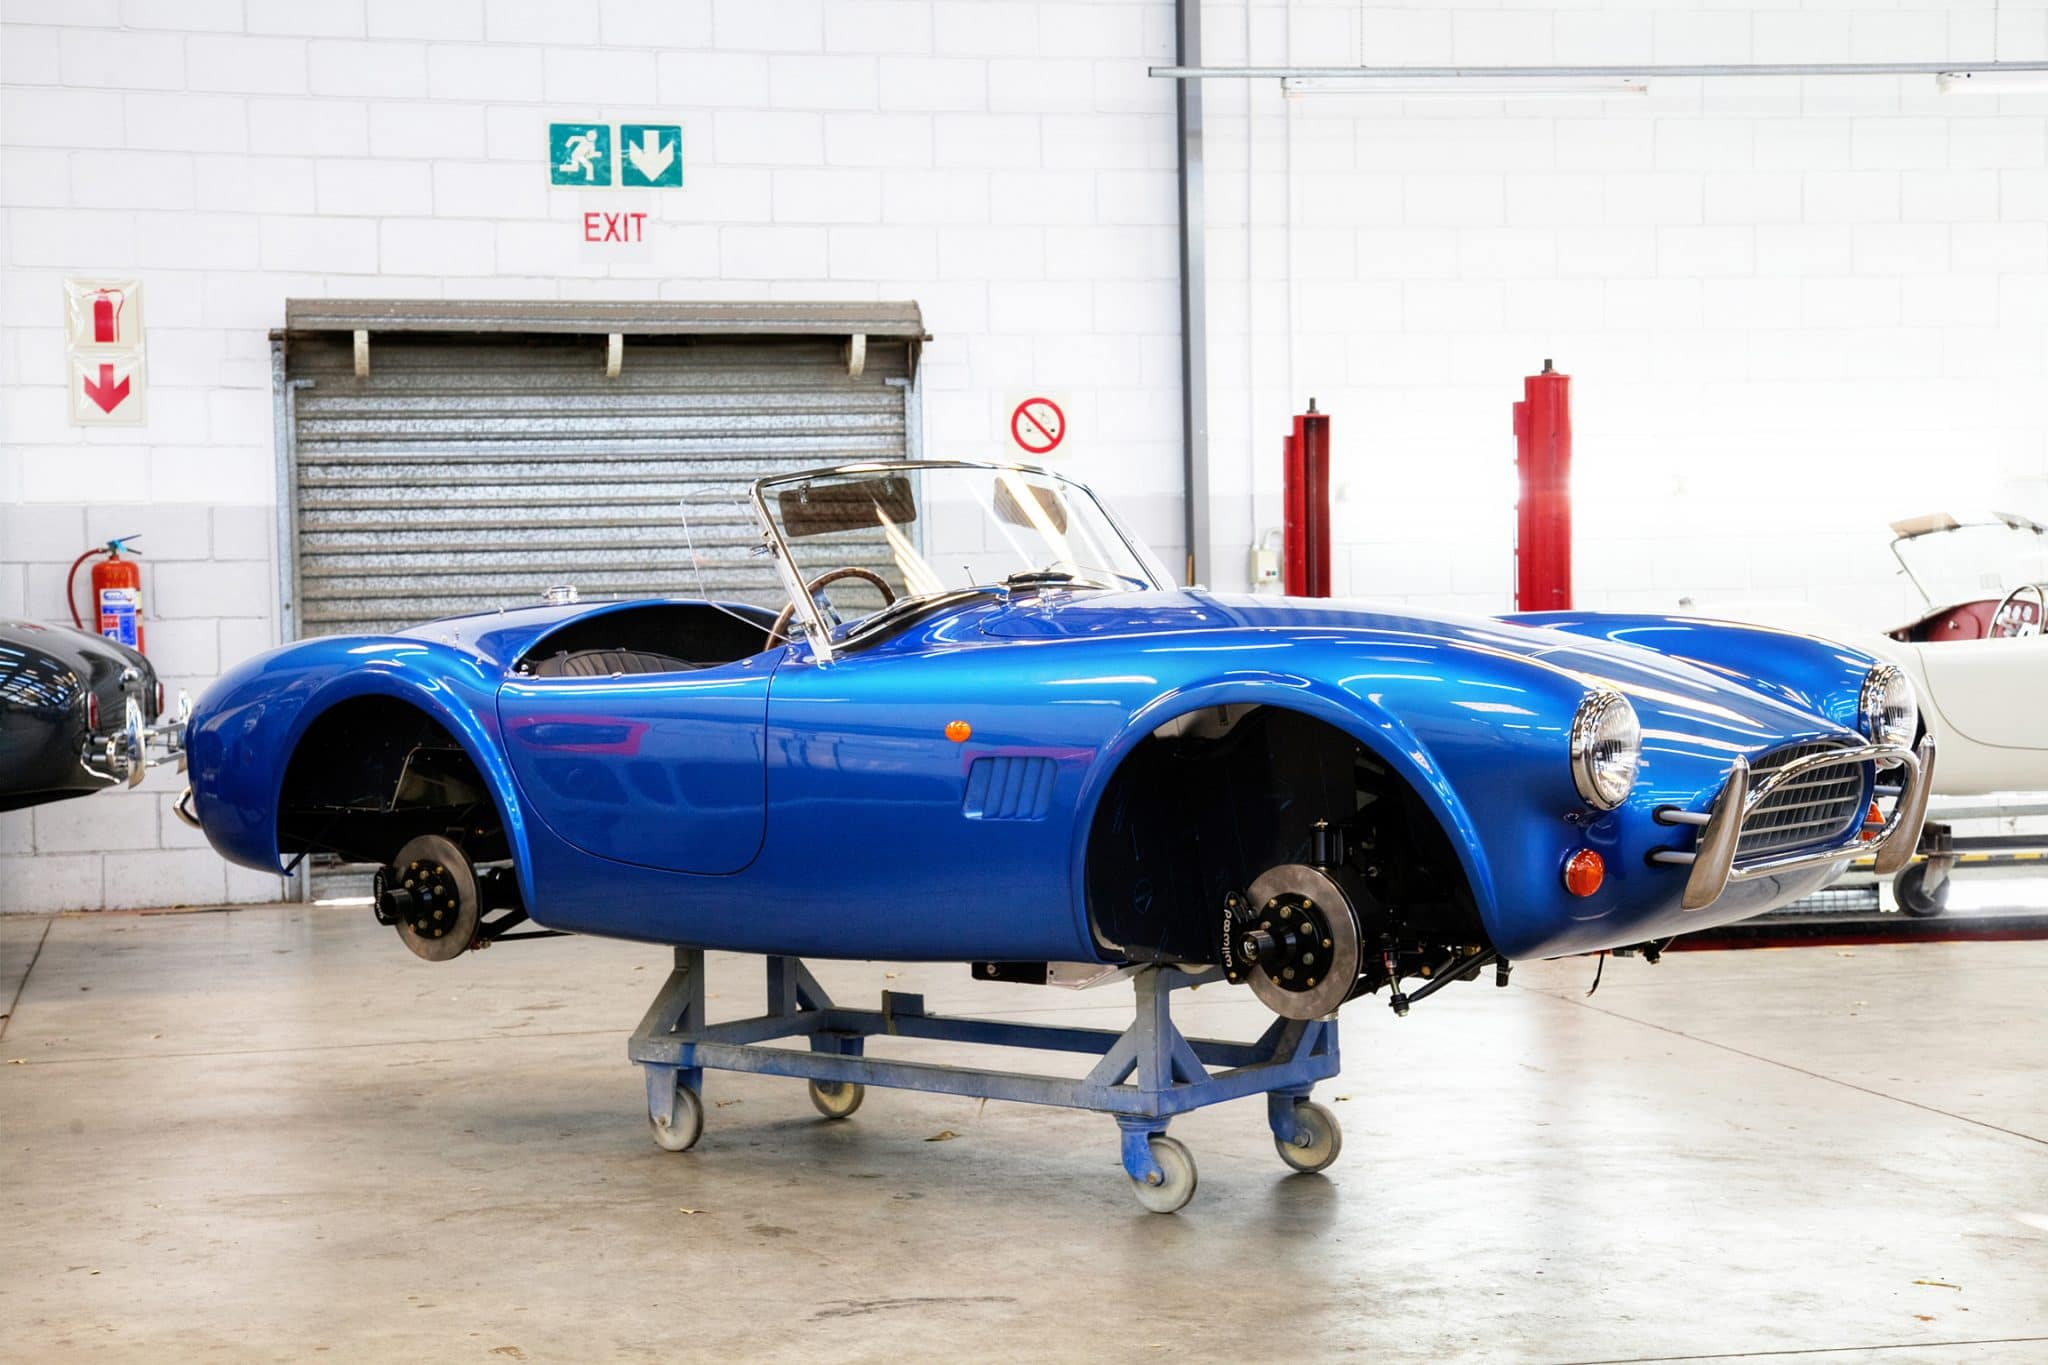 Two New AC Cobra Models Arrive in UK